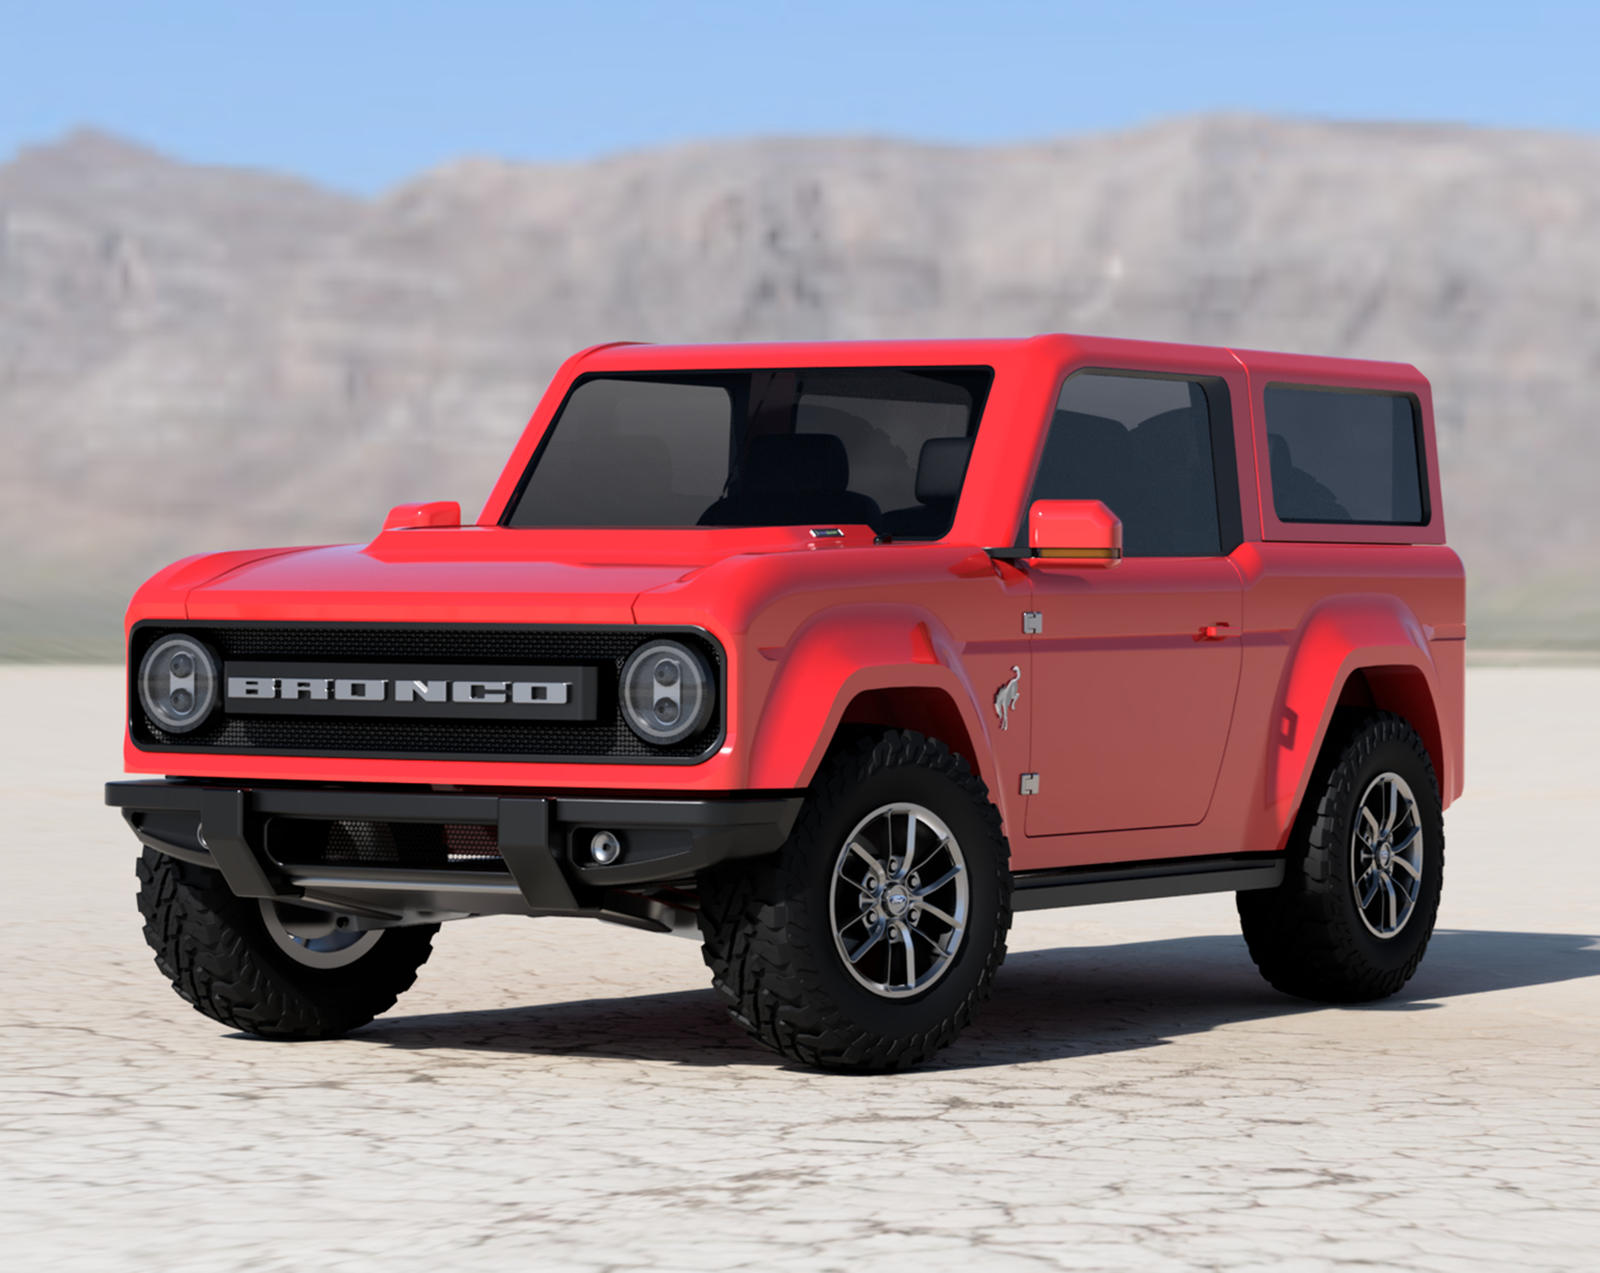 Alone in the desert, stands a shiny red 2021 Ford Bronco